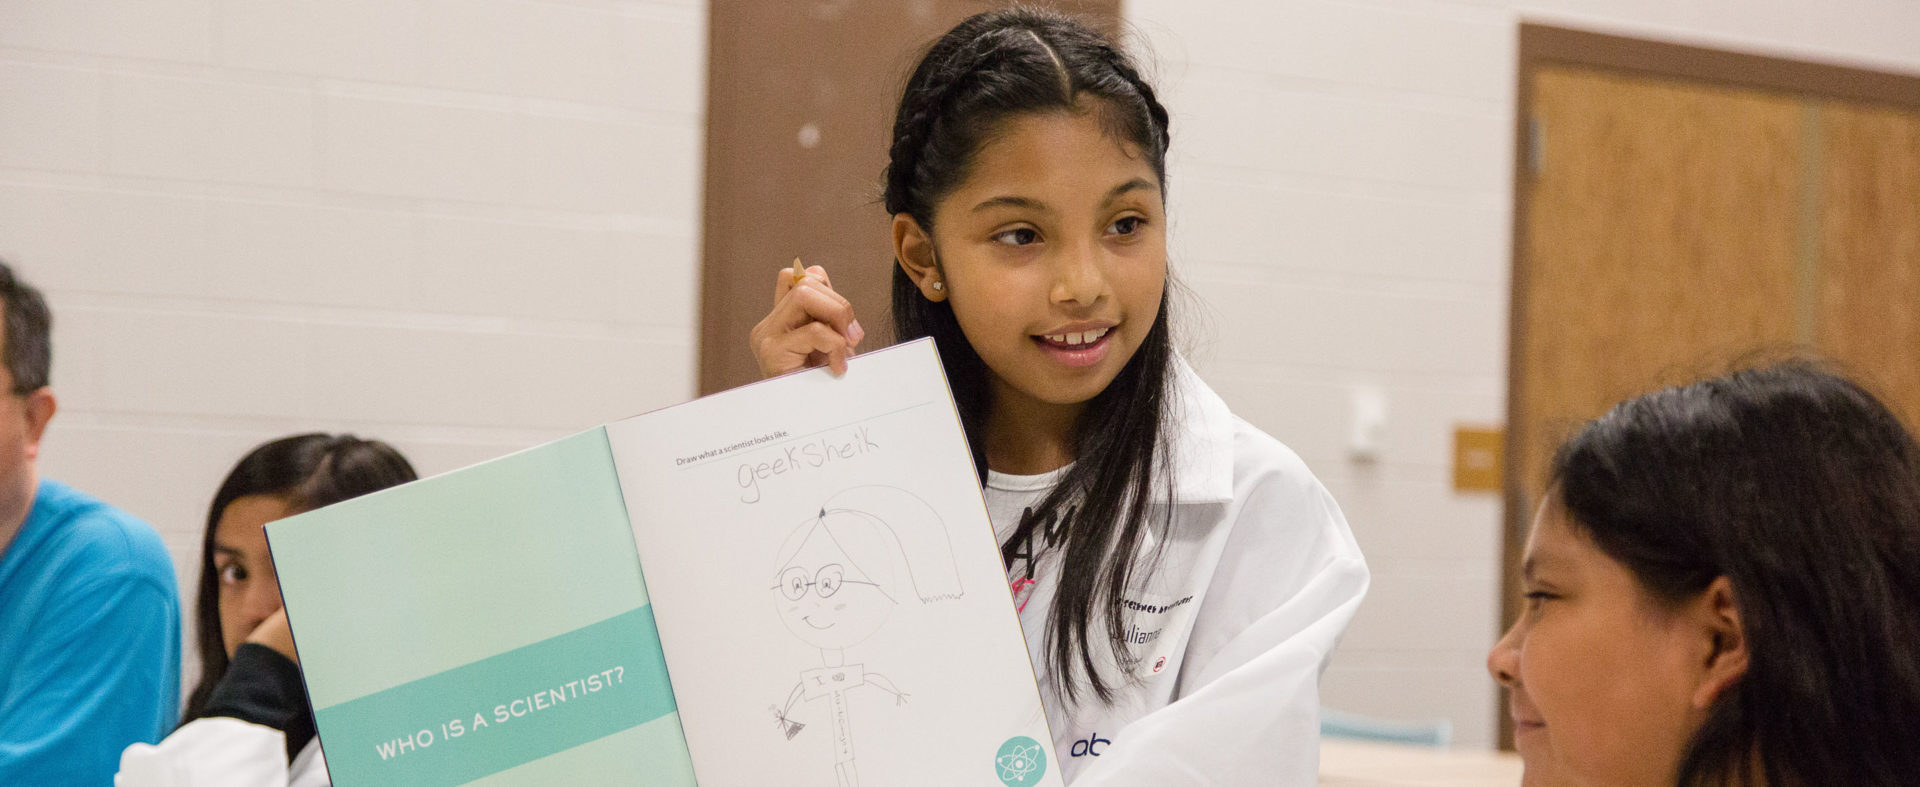 A young child in a lab coat shows off her drawing of what a scientist looks like.